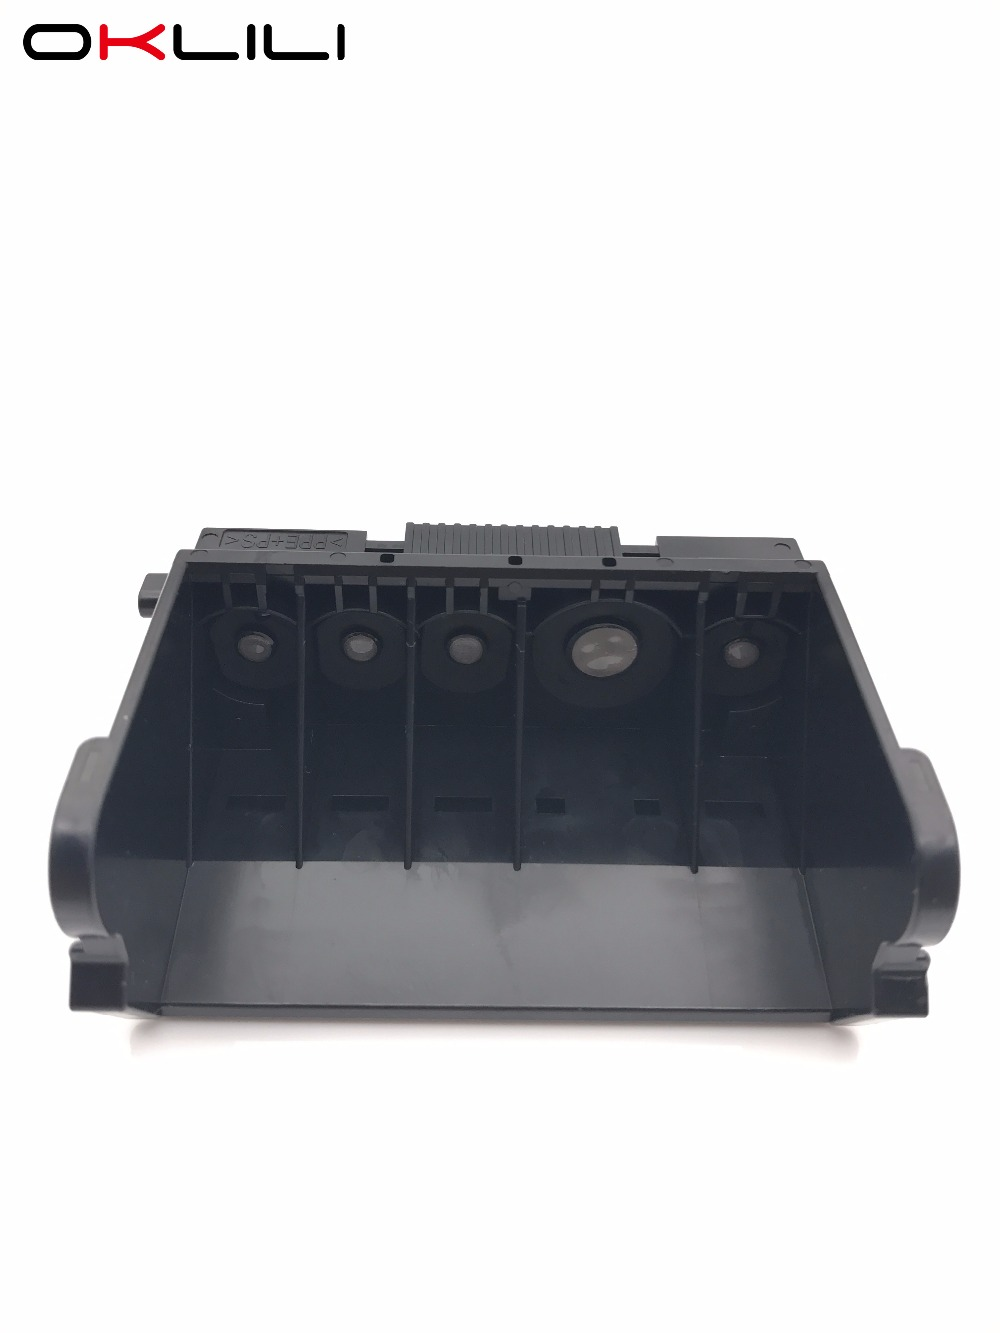 OKLILI ORIGINAL QY6-0059 QY6-0059-000 Printhead Print Head Printer Head for Canon iP4200 MP500 MP530 oklili original qy6 0050 qy6 0050 000 printhead print head printer head for canon pixus 900pd i900d i950d ip6100d ip6000d